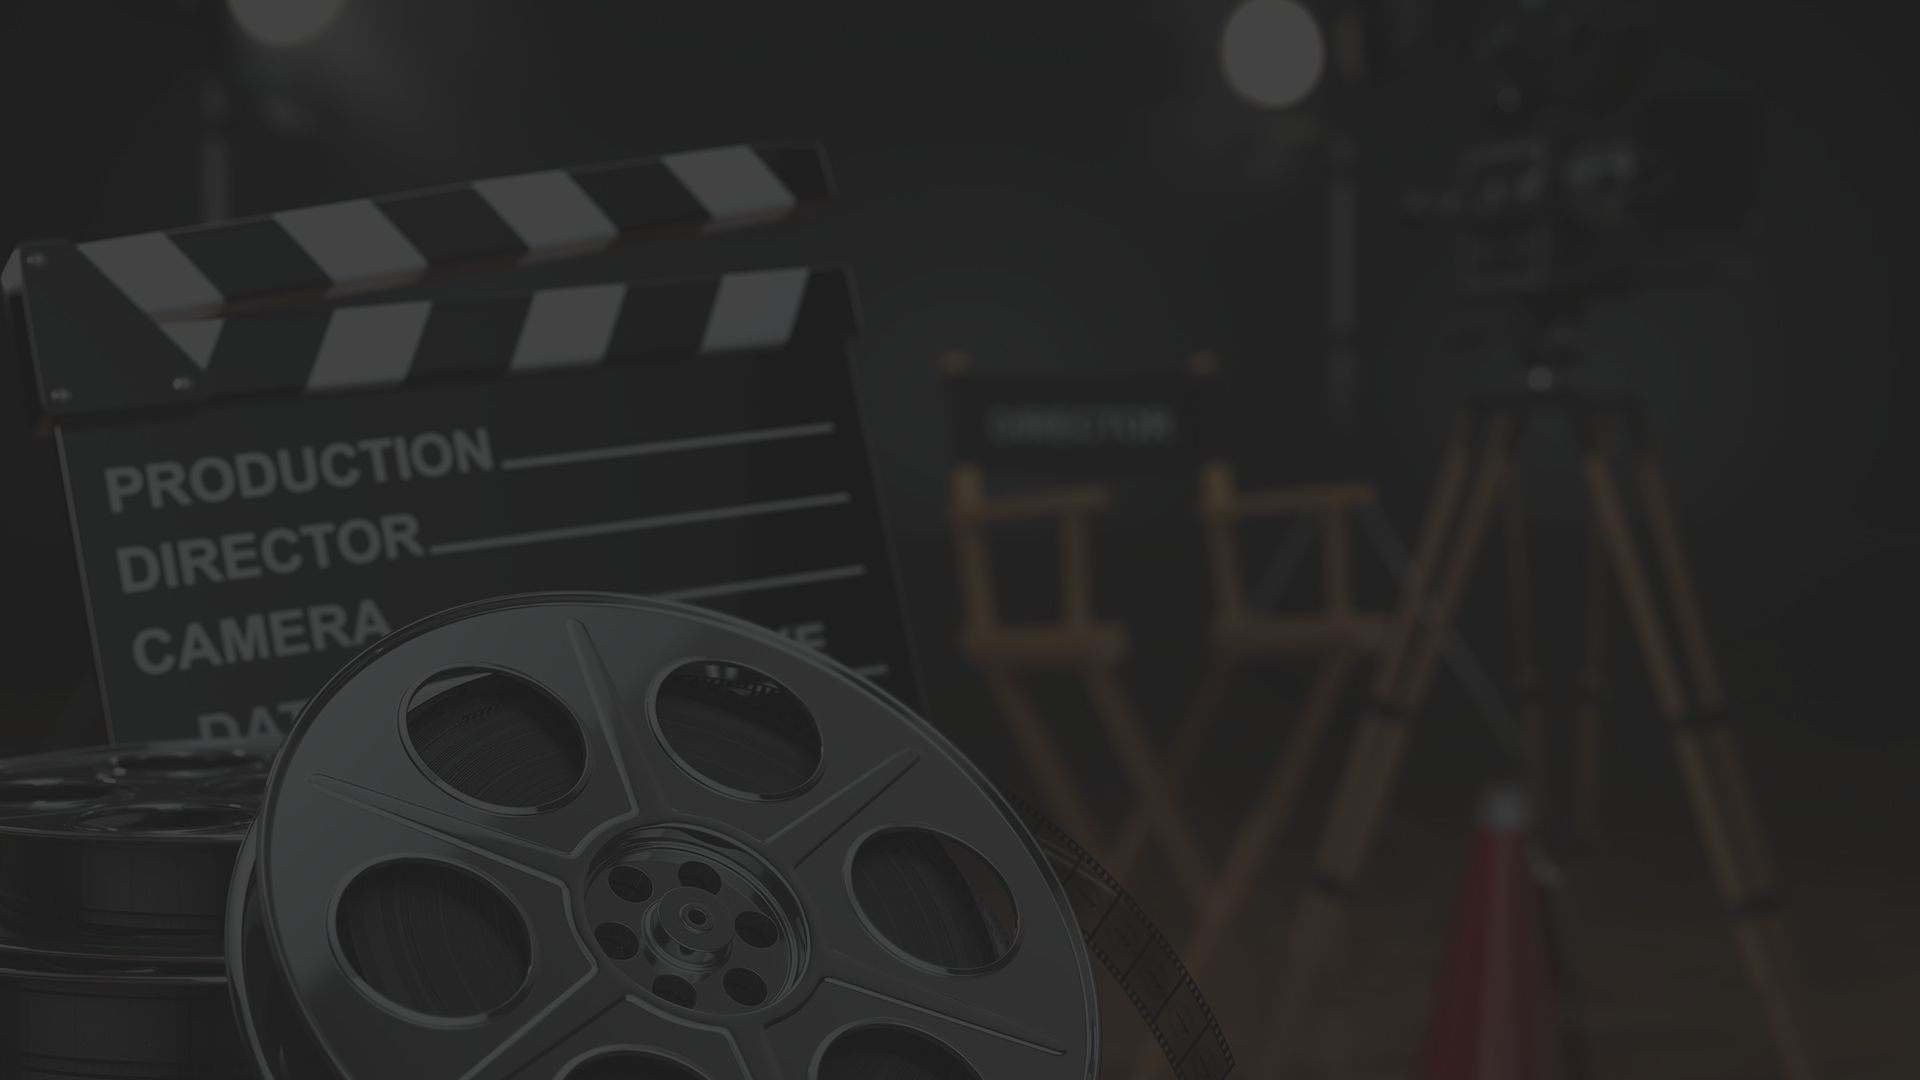 MFC Productions Ltd, a Film production company